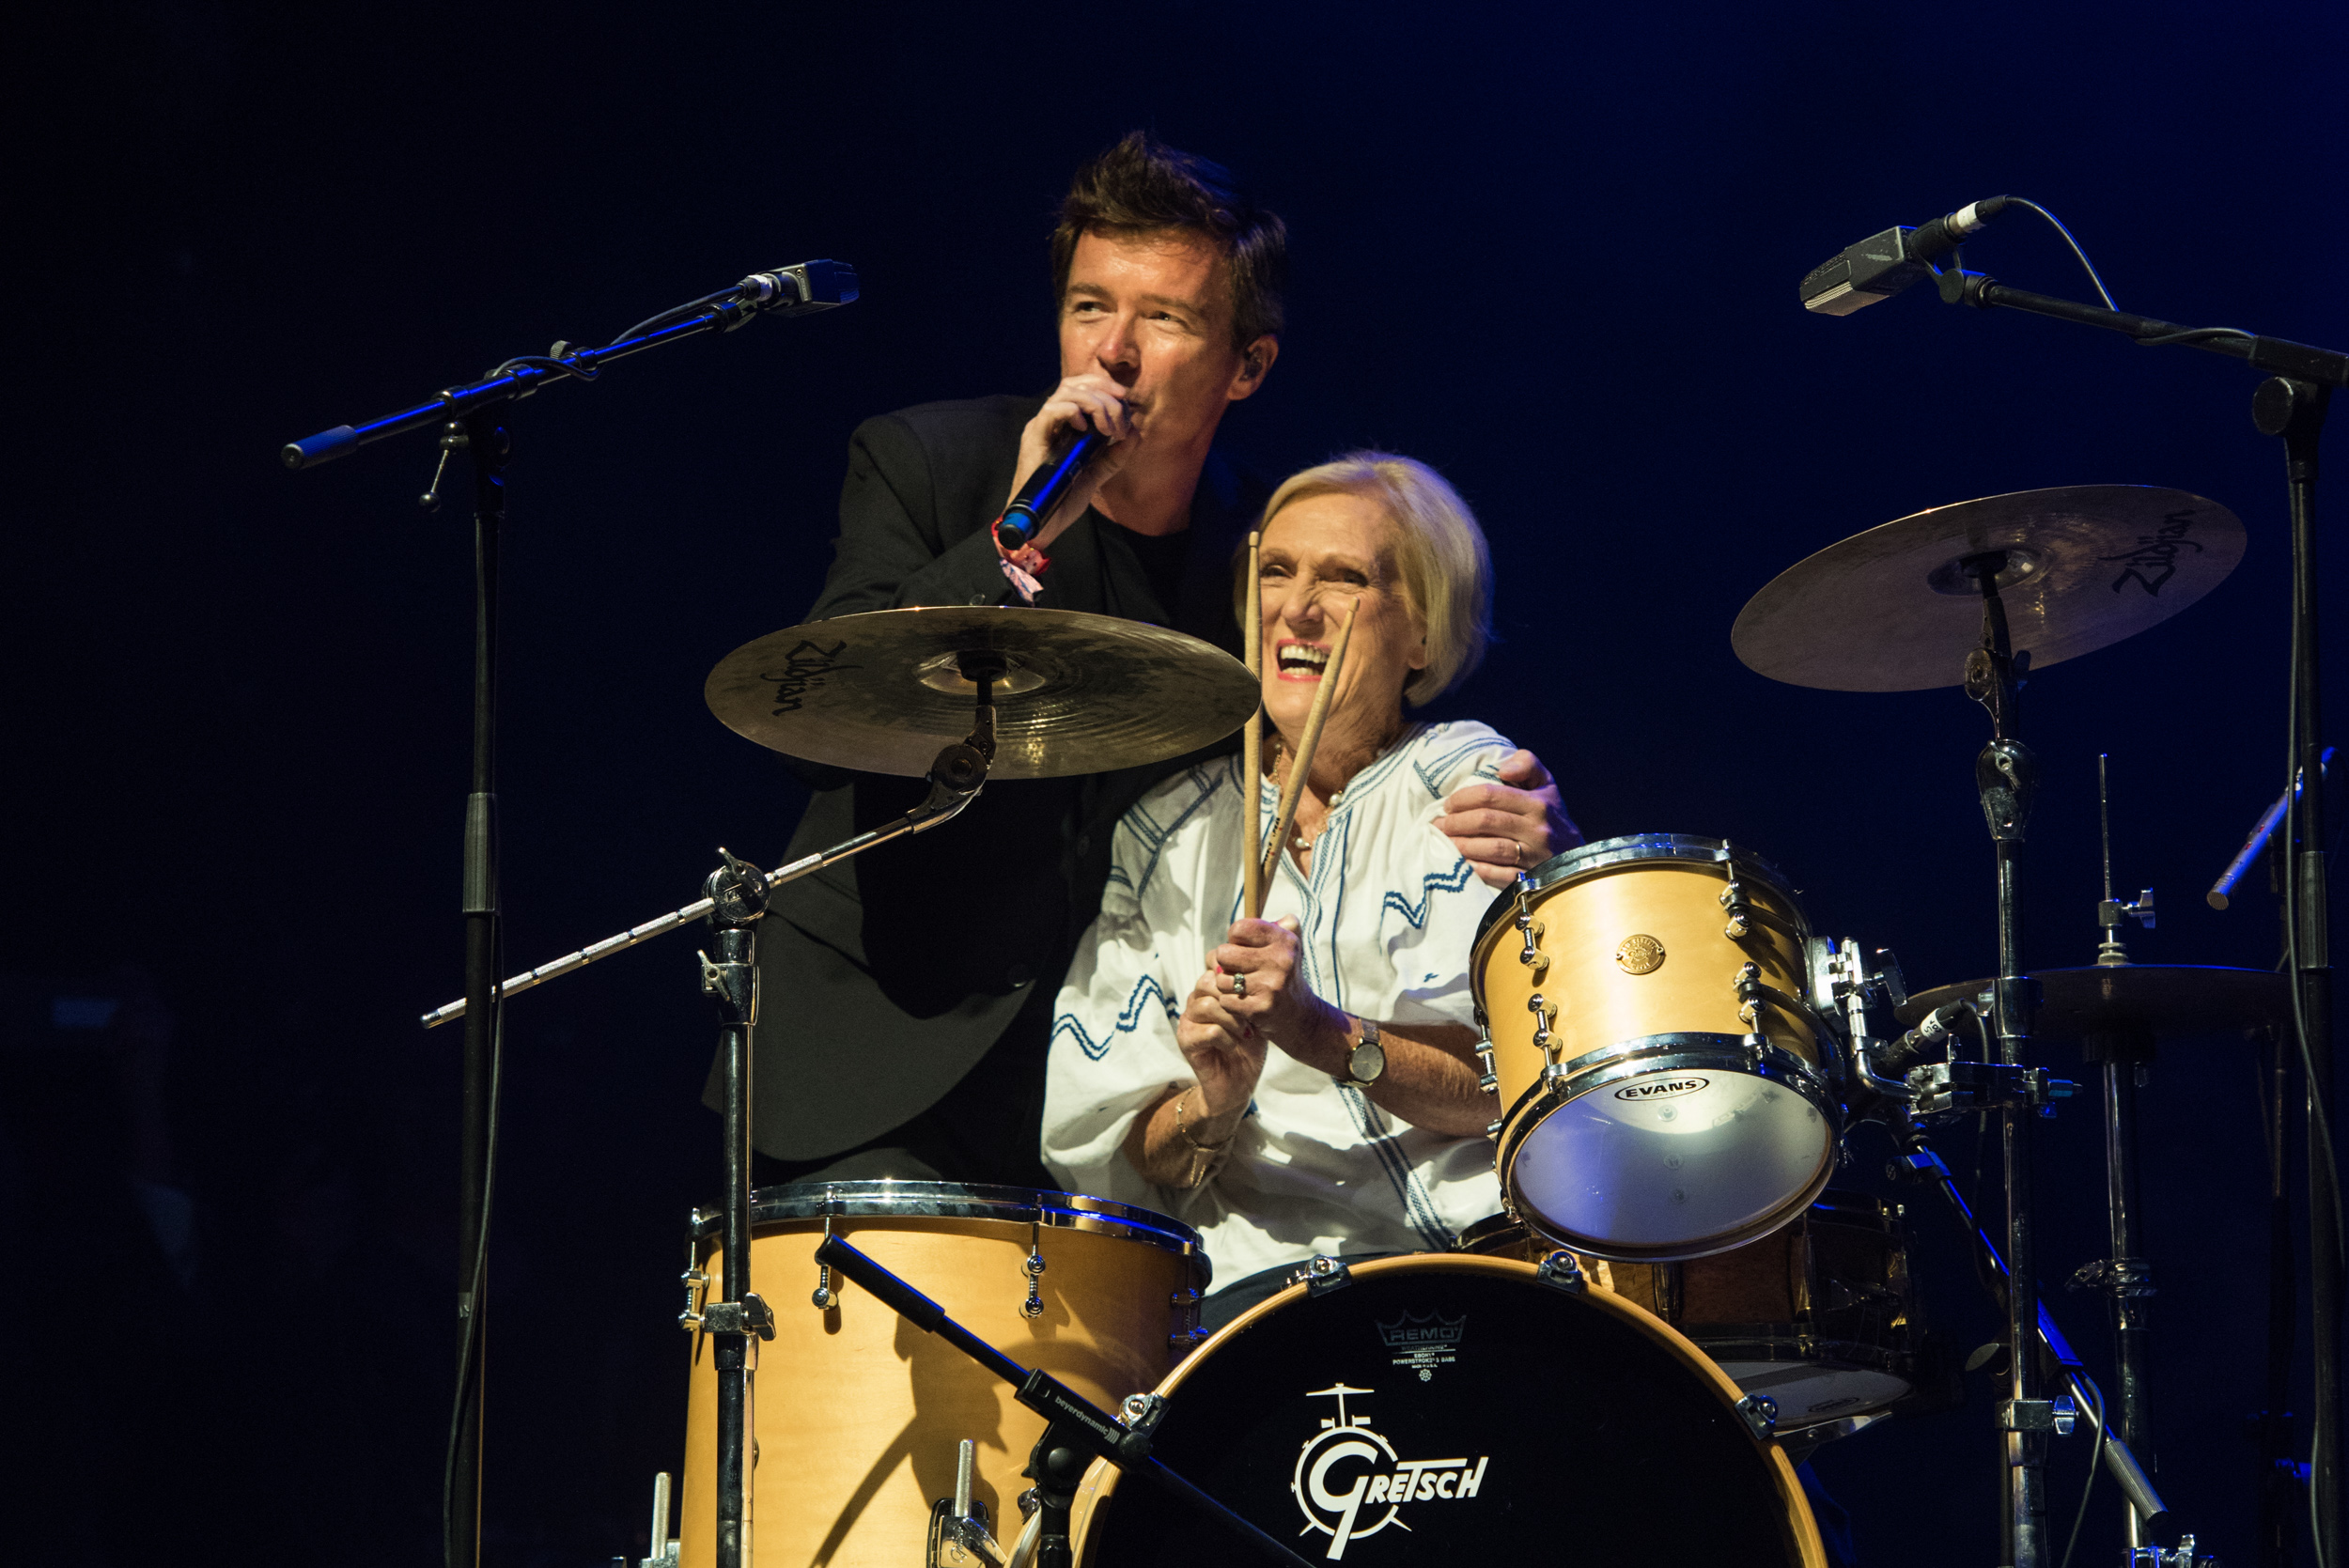 Camp Bestival 2018 Review - Rick Astley & Mary Berry